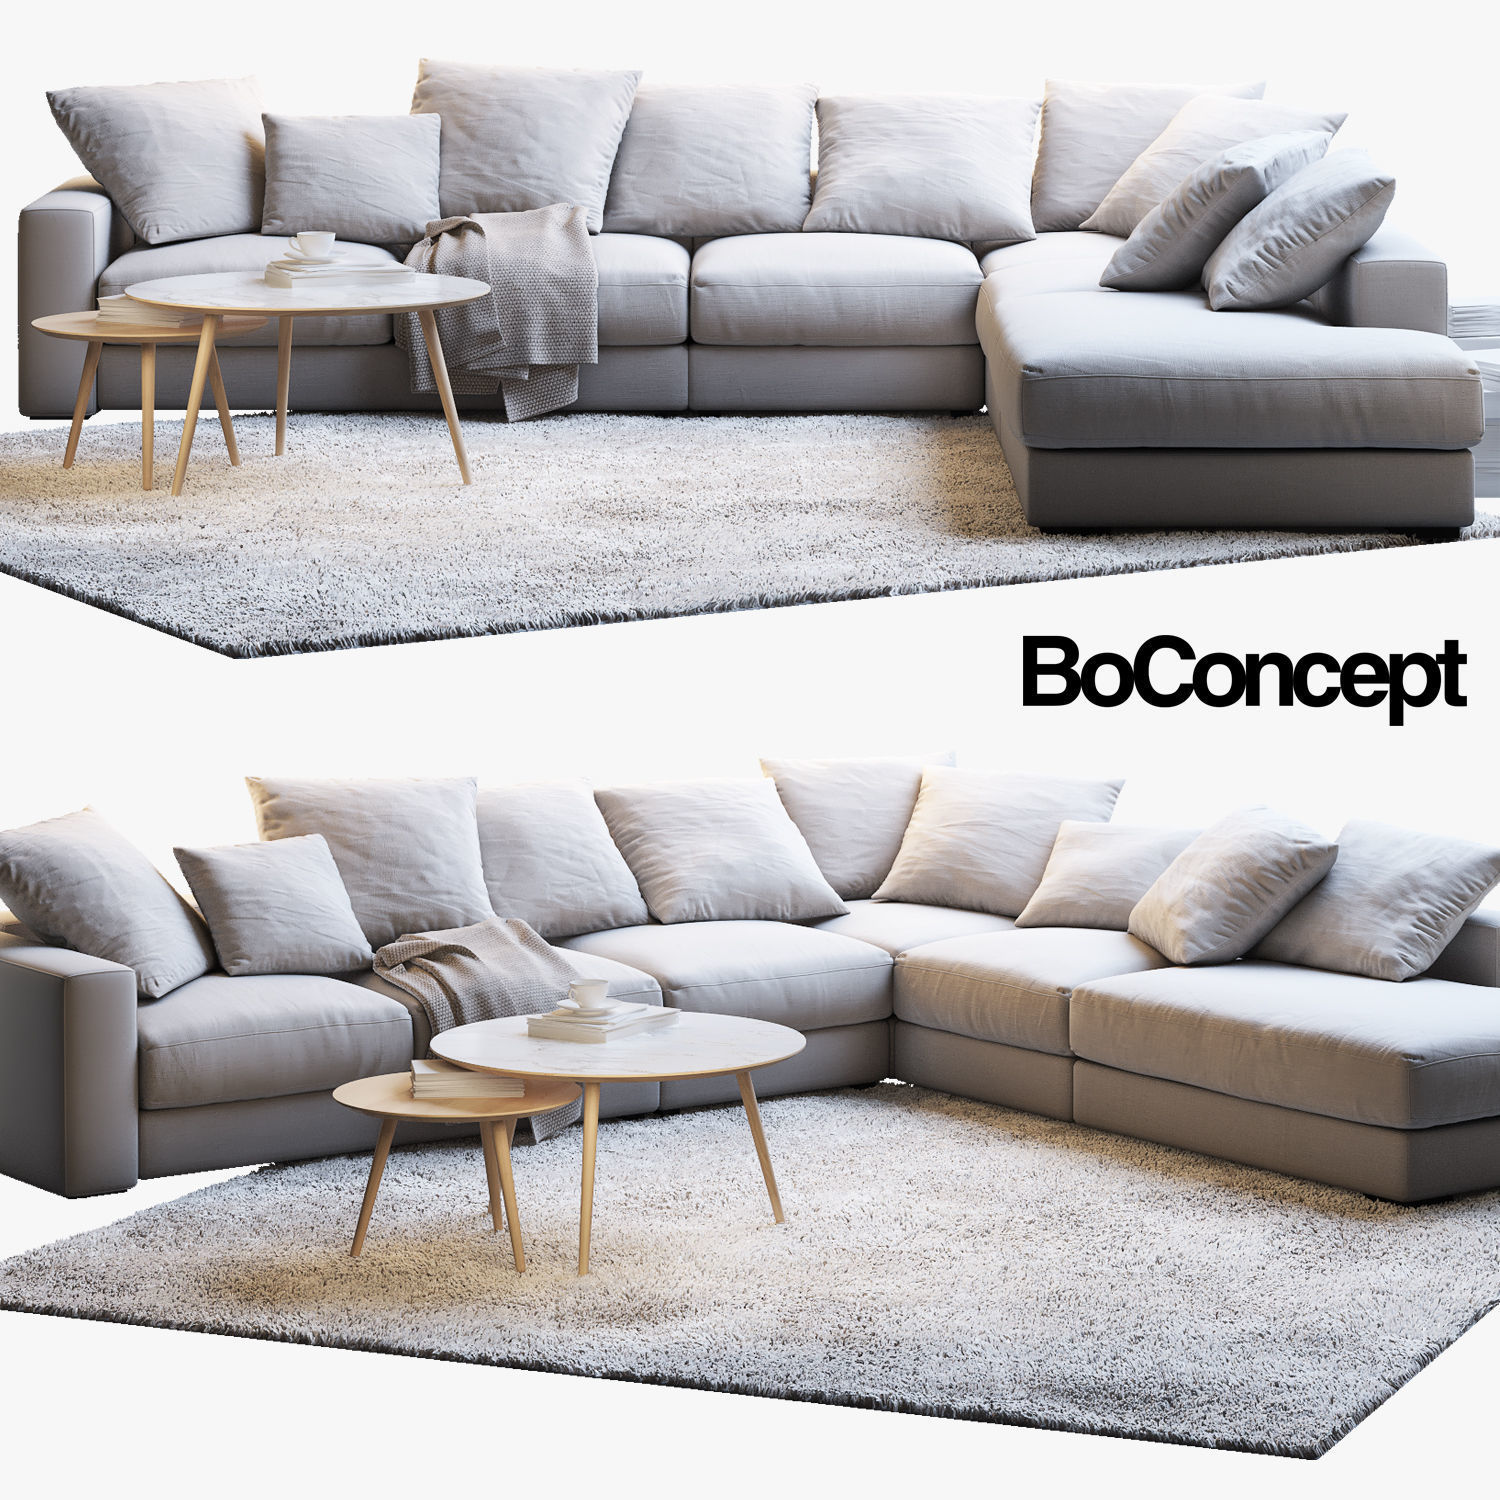 boconcept melo reclining sofa bed recliner sectional india bo concept sofas from the collection thesofa